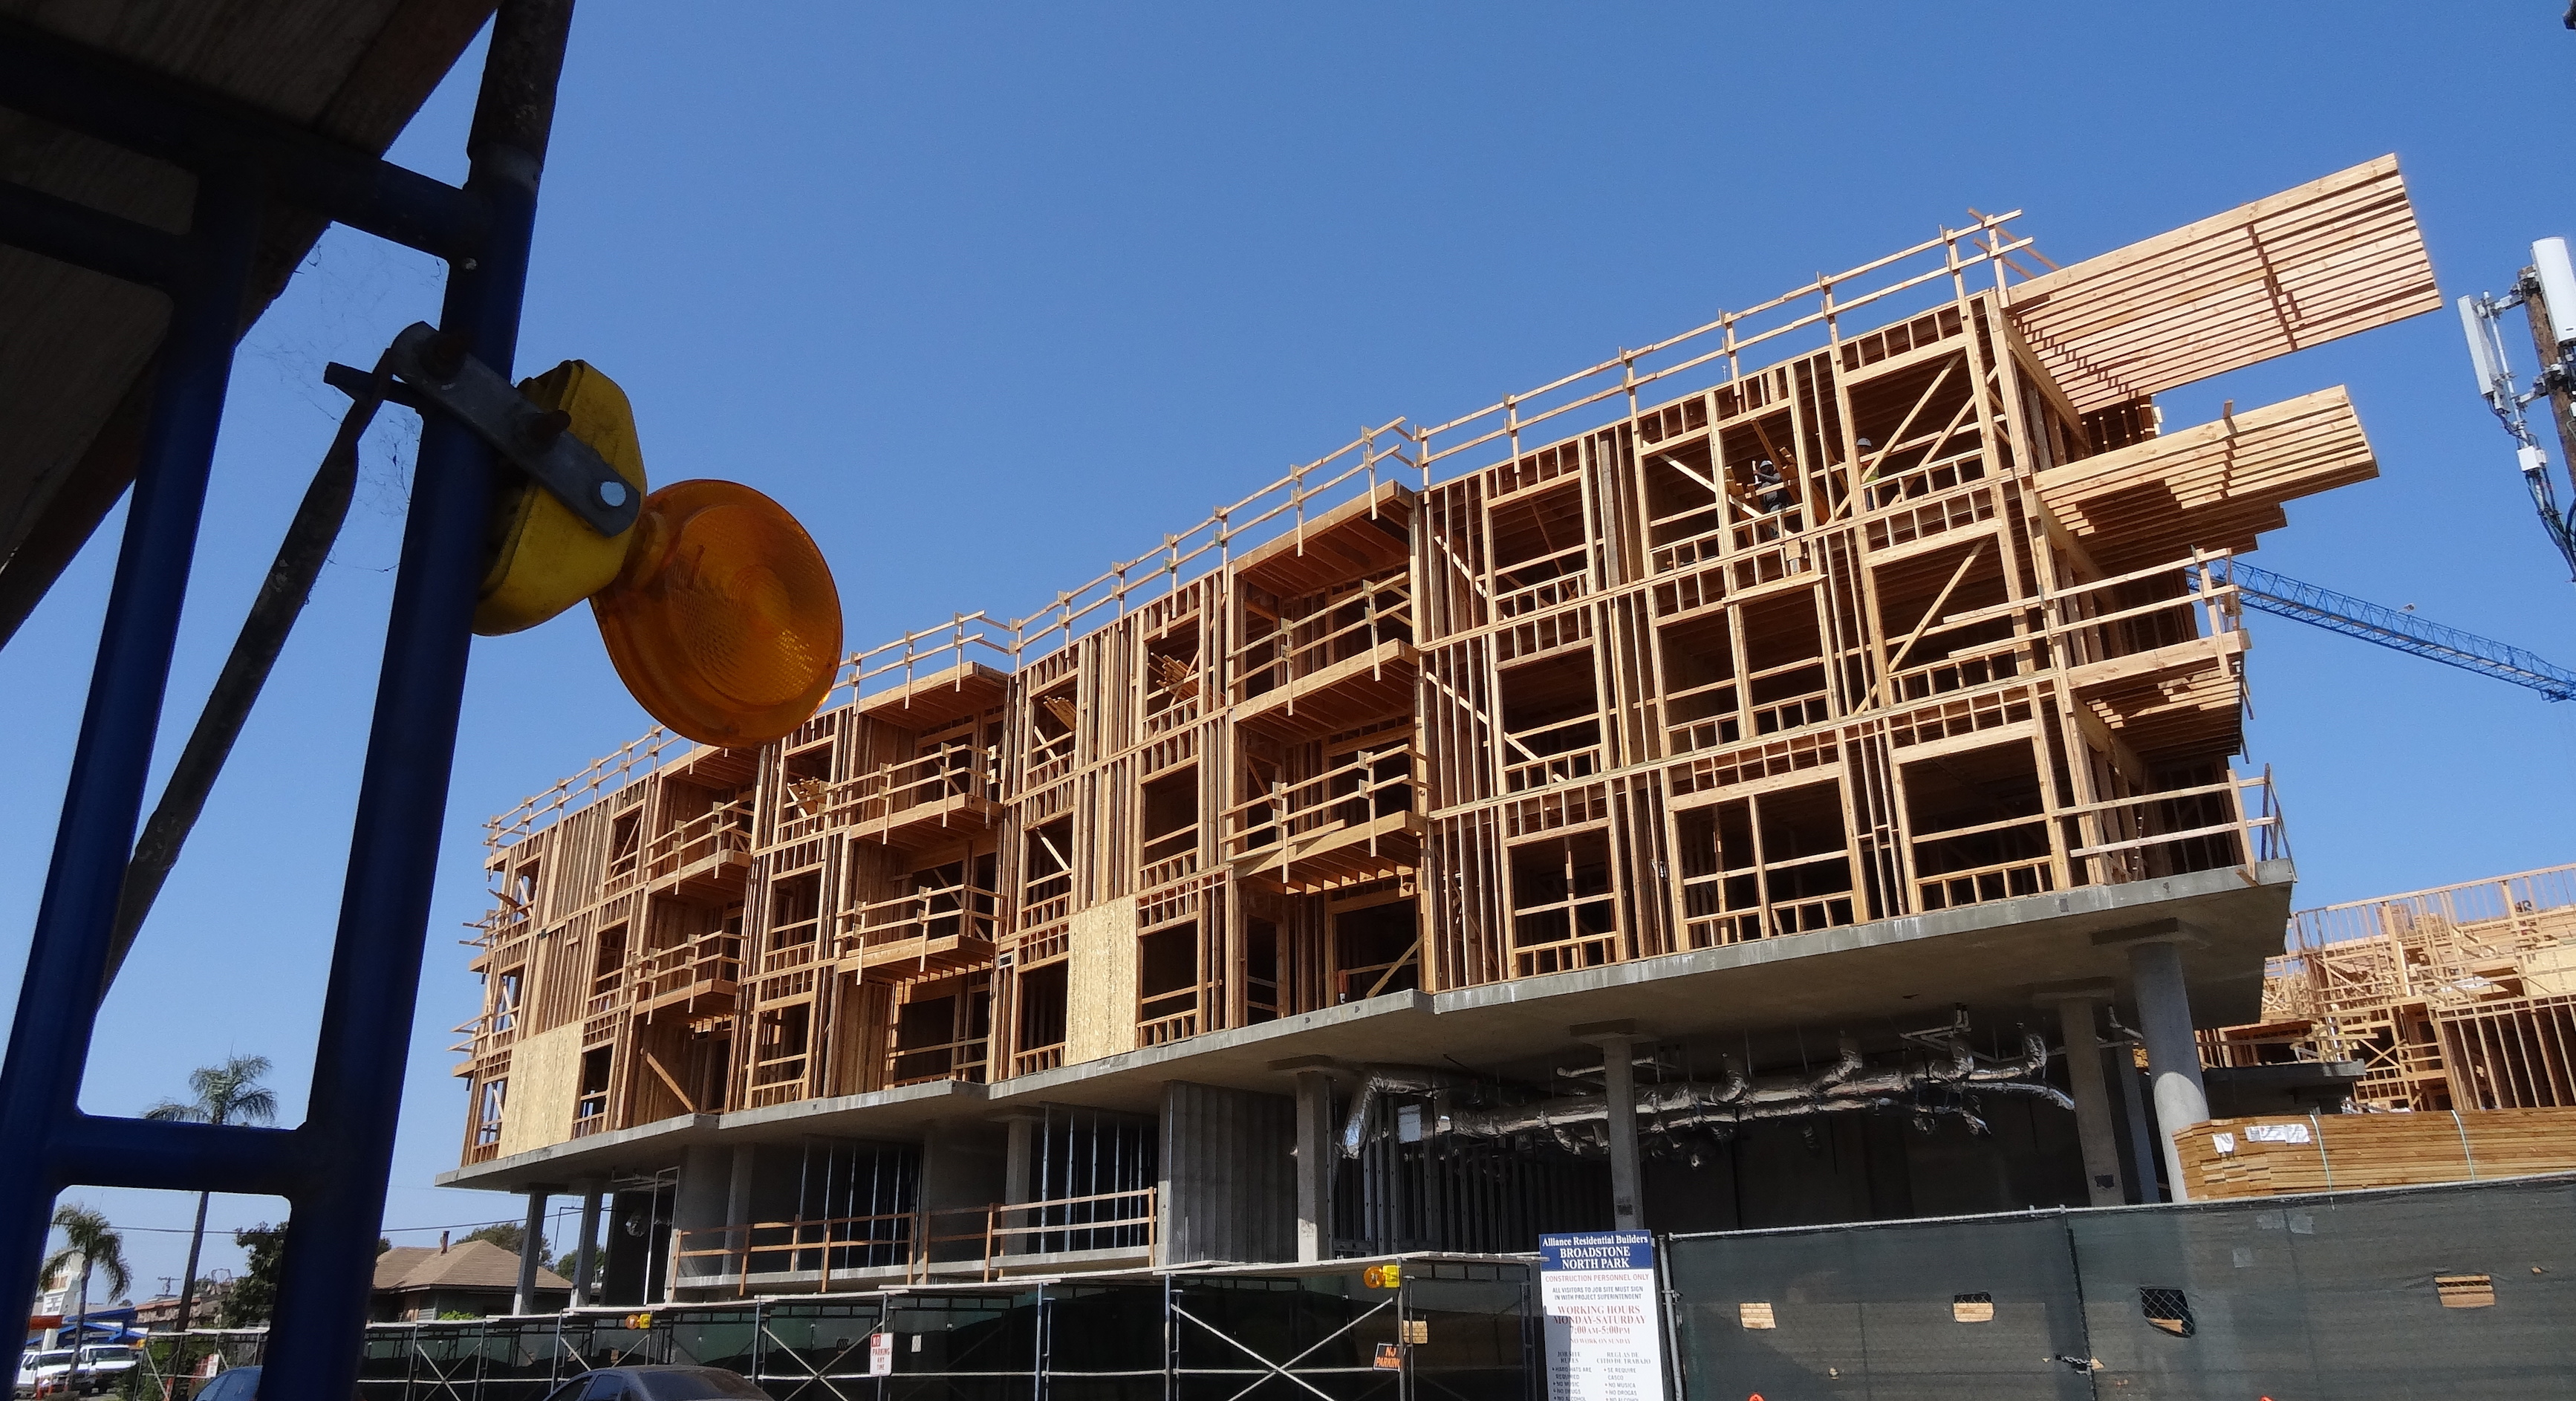 Luxury apartments rising at texas street and howard san diego reader - Apartment buildings san diego ...